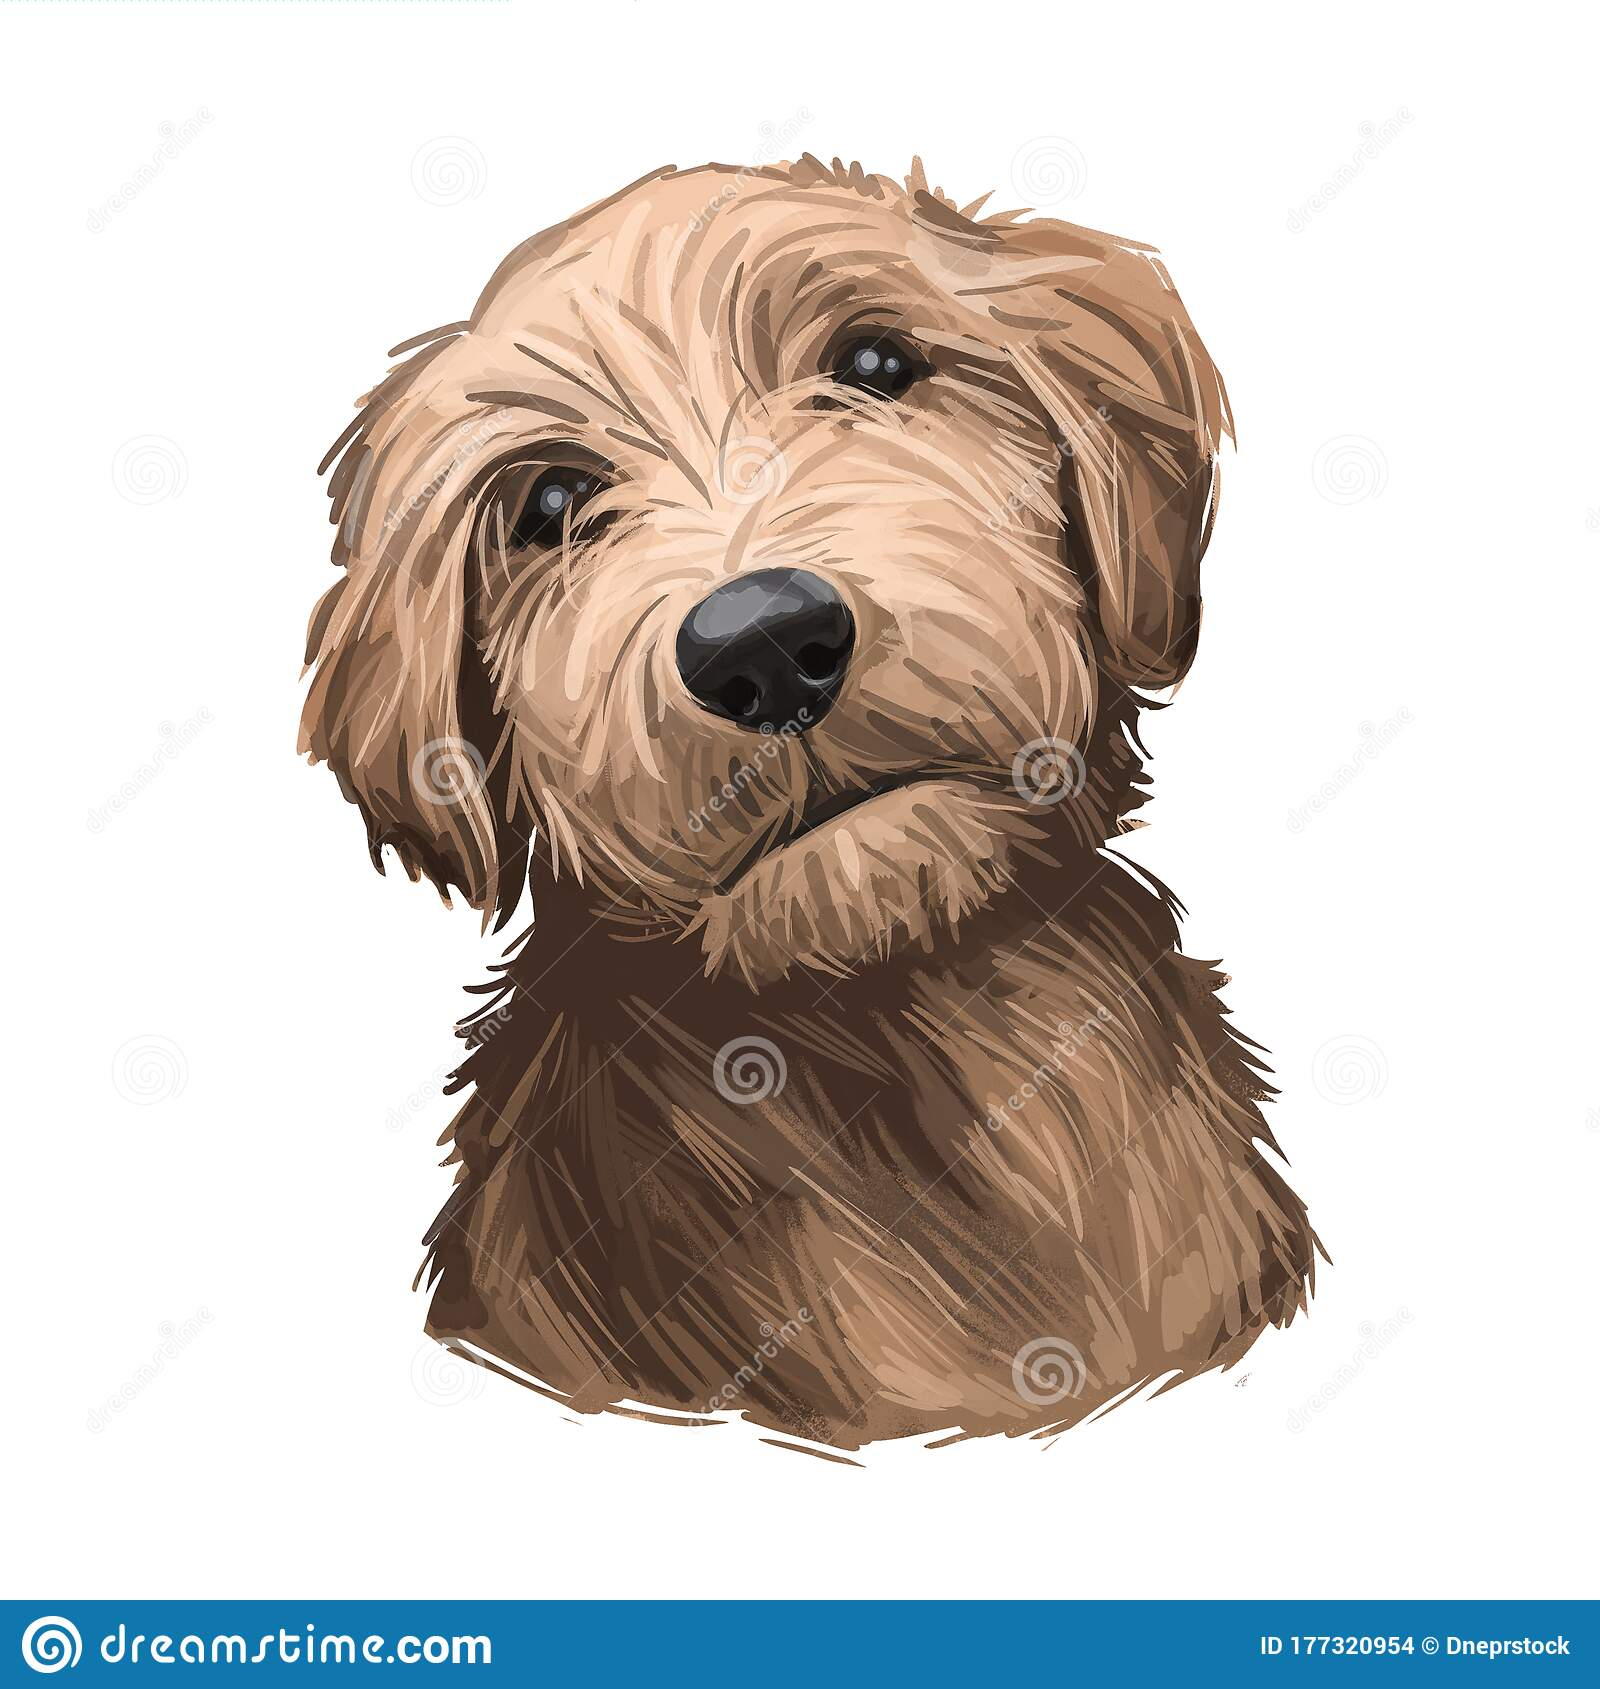 Goldendoodle Puppy Cross Breed Of Golden Retriever And Poodle Isolated On White Digital Art Illustration Of Hand Drawn Cute Home Stock Illustration Illustration Of Goldendoodle Hand 177320954